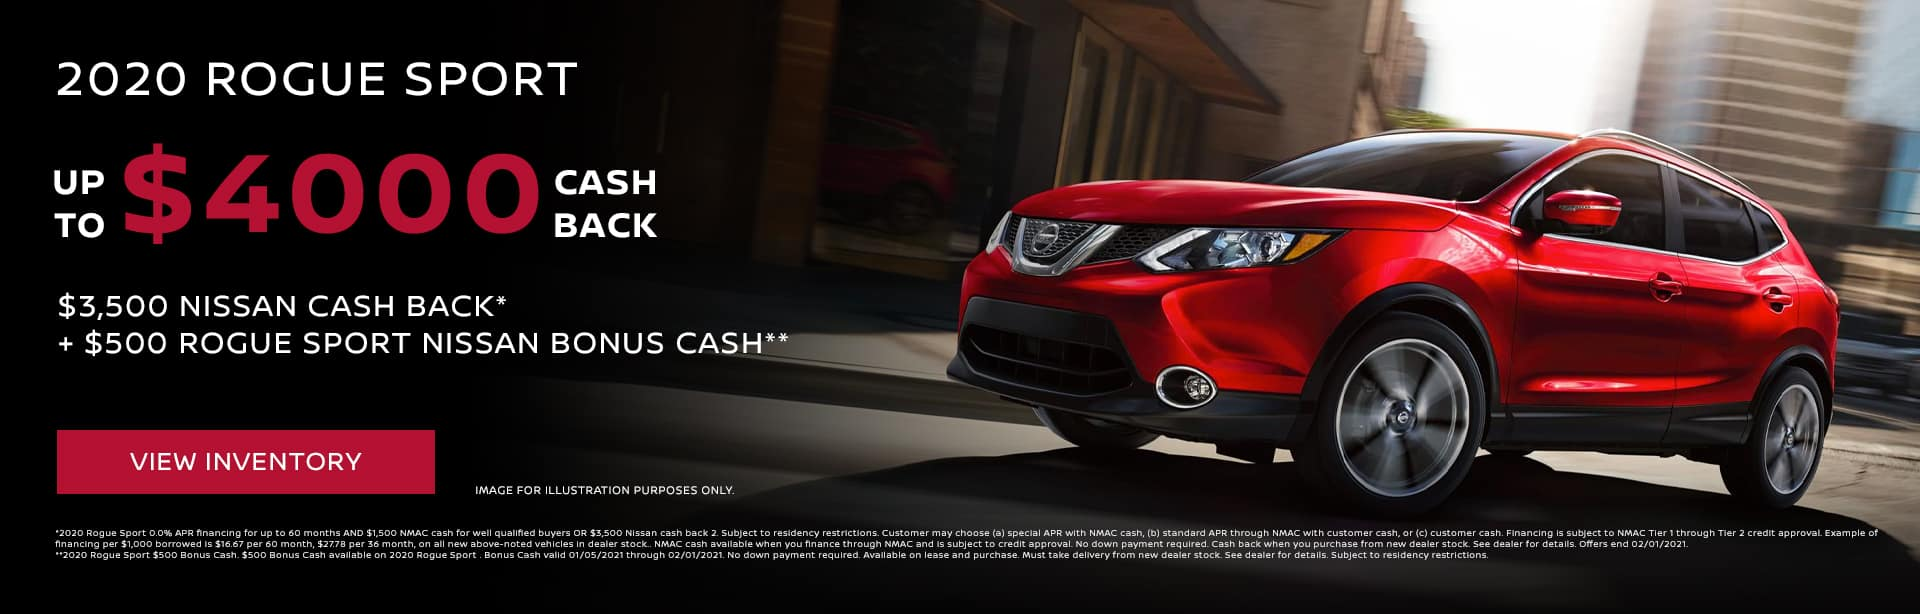 2020 Rogue Sport Up to $4,000 in total savings ($3,500 Nissan Cash Back* + $500 Rogue Sport Nissan Bonus Cash**)